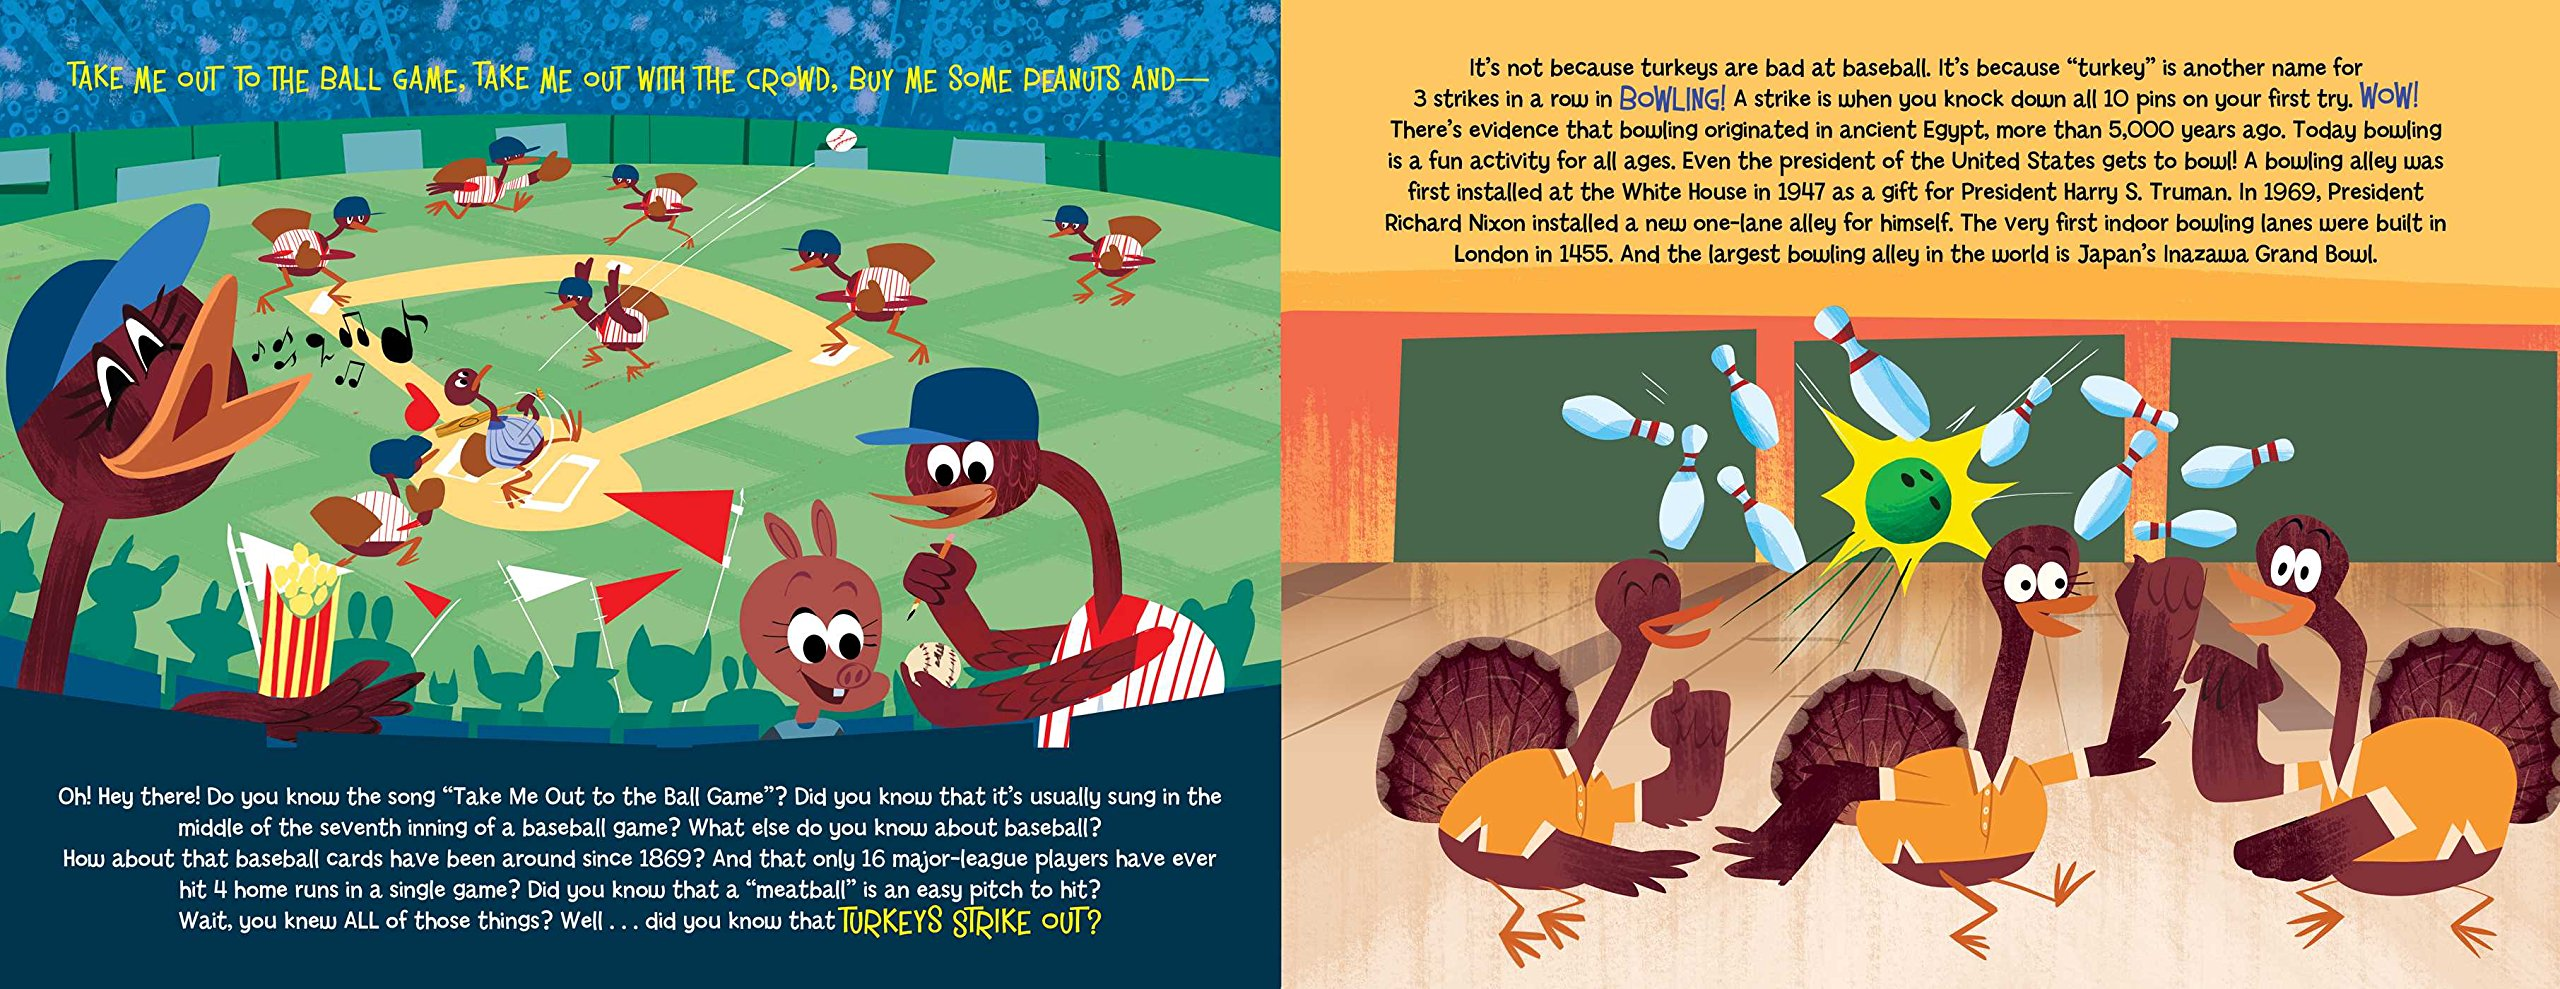 Turkeys Strike Out: and other fun facts (Did You Know?): Hannah Eliot, Aaron Spurgeon: 9781481451680: Amazon.com: Books